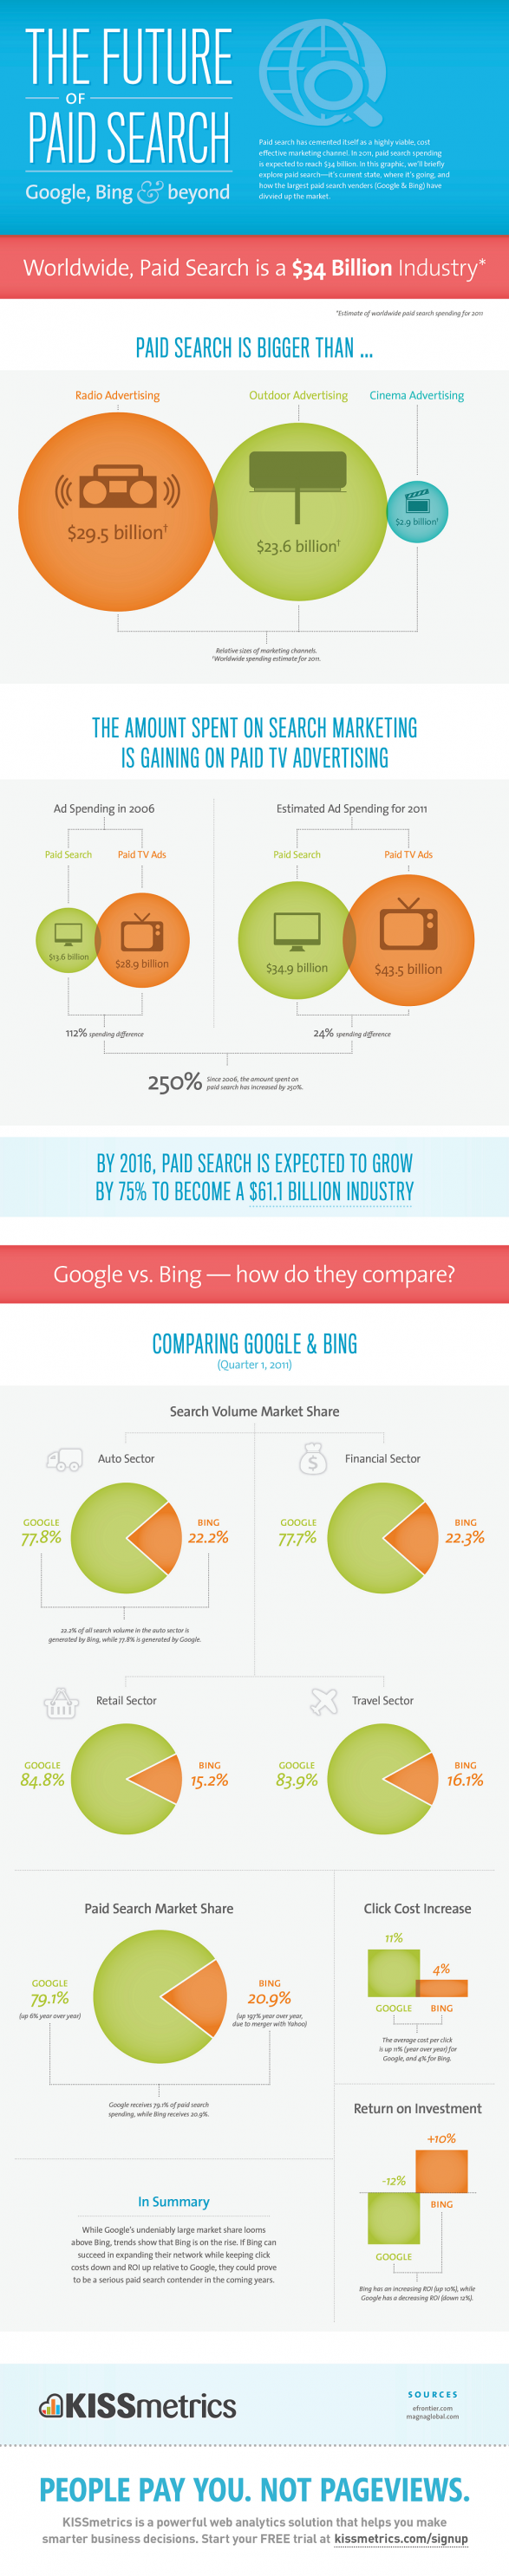 The Future of Paid Search � Google, Bing & Beyond